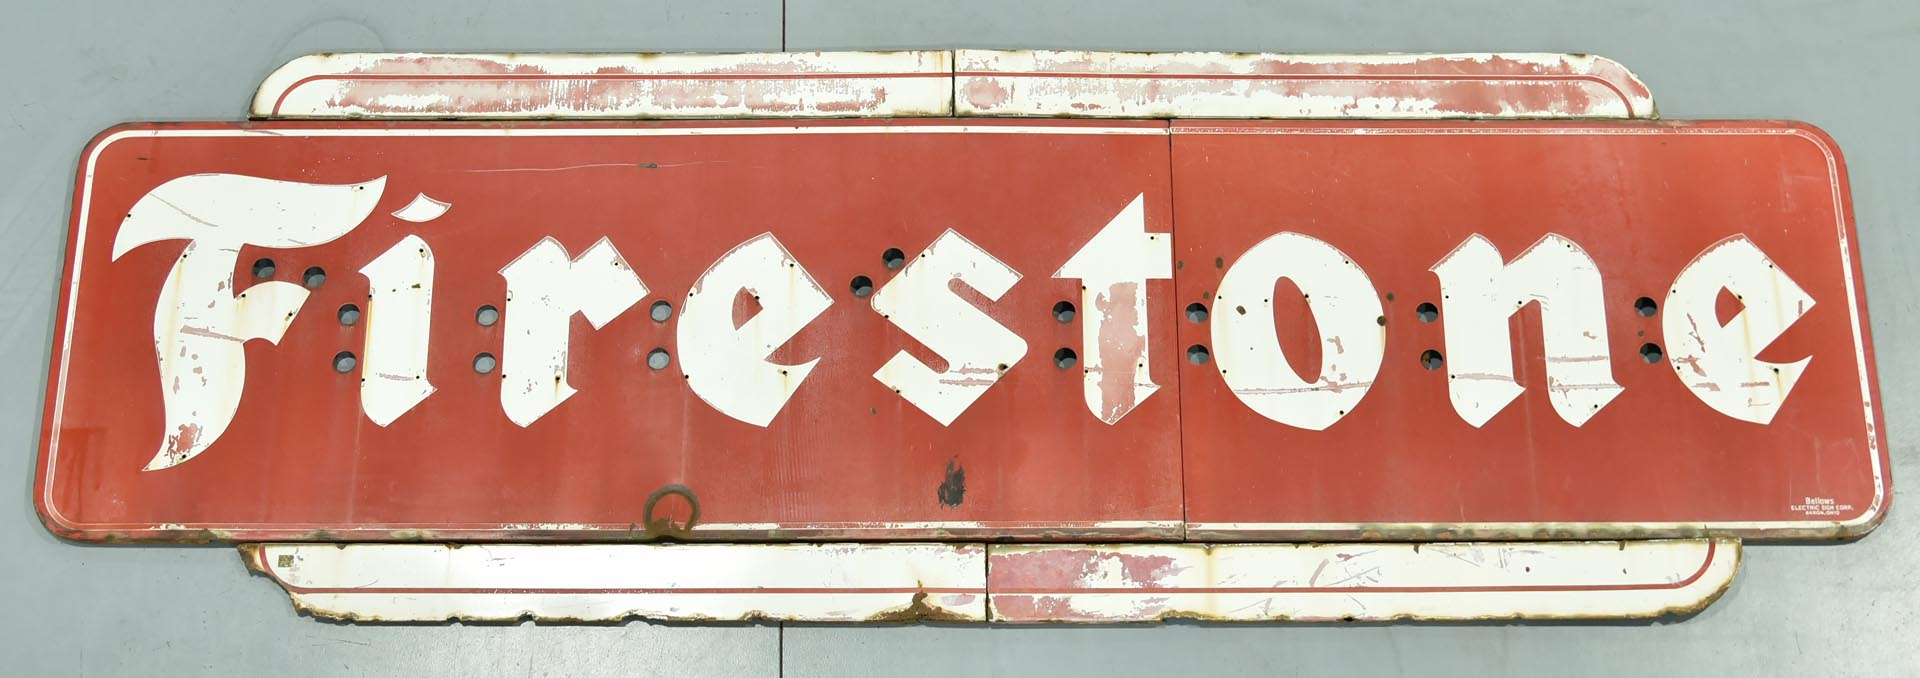 Large Firestone Dealership Porcelain Neon Sign with Top and Bottom Trim Pieces